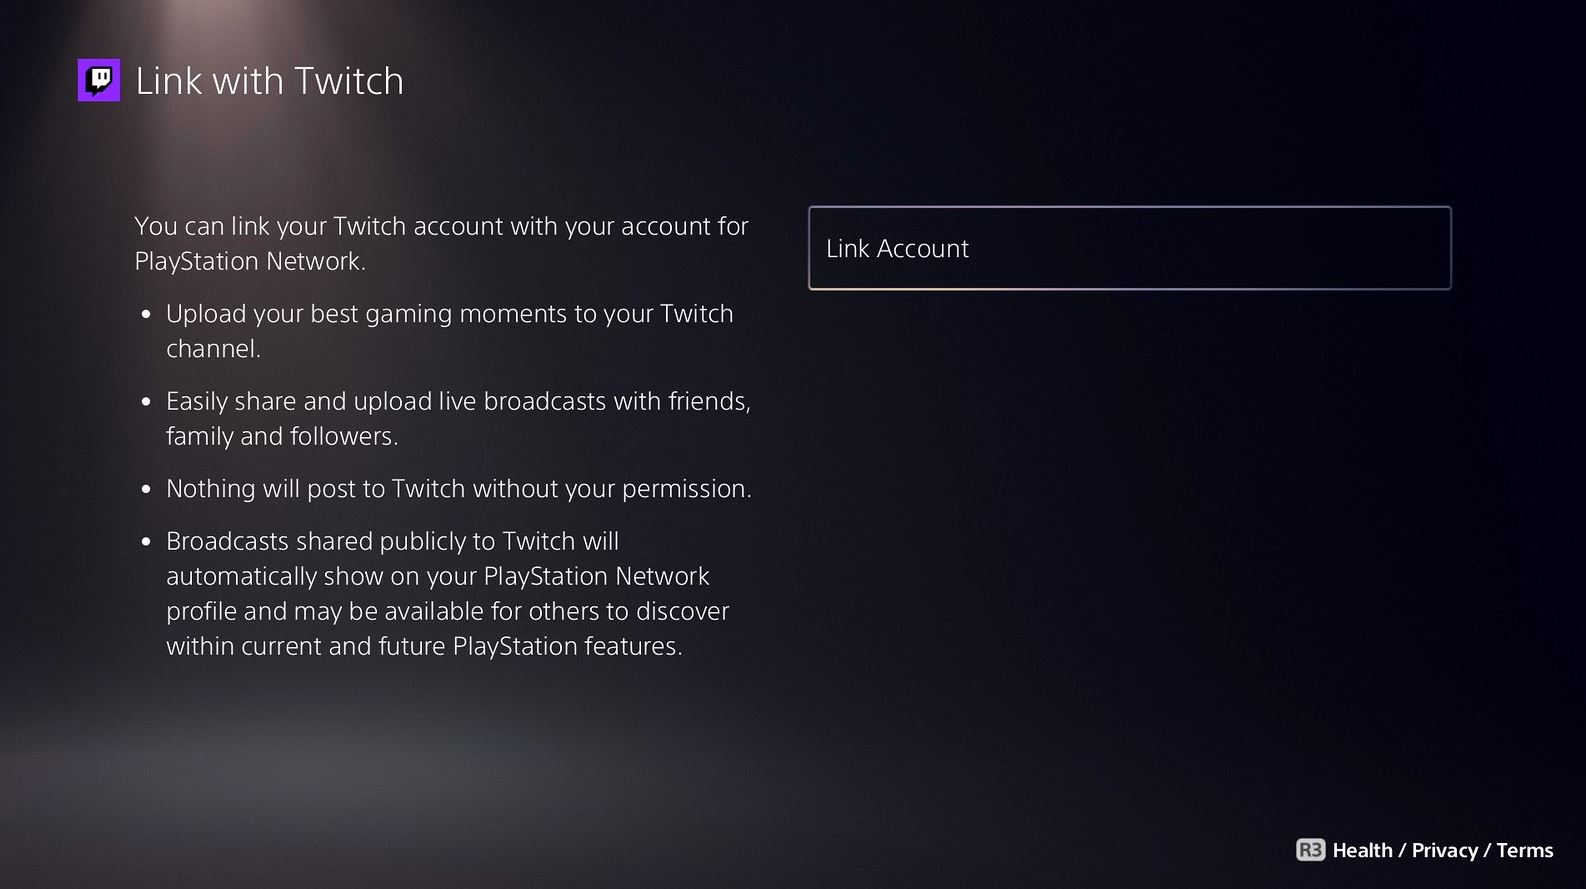 how-to-stream-on-twitch-from-your-ps5-how-to-set-up-twitch-on-your-ps5